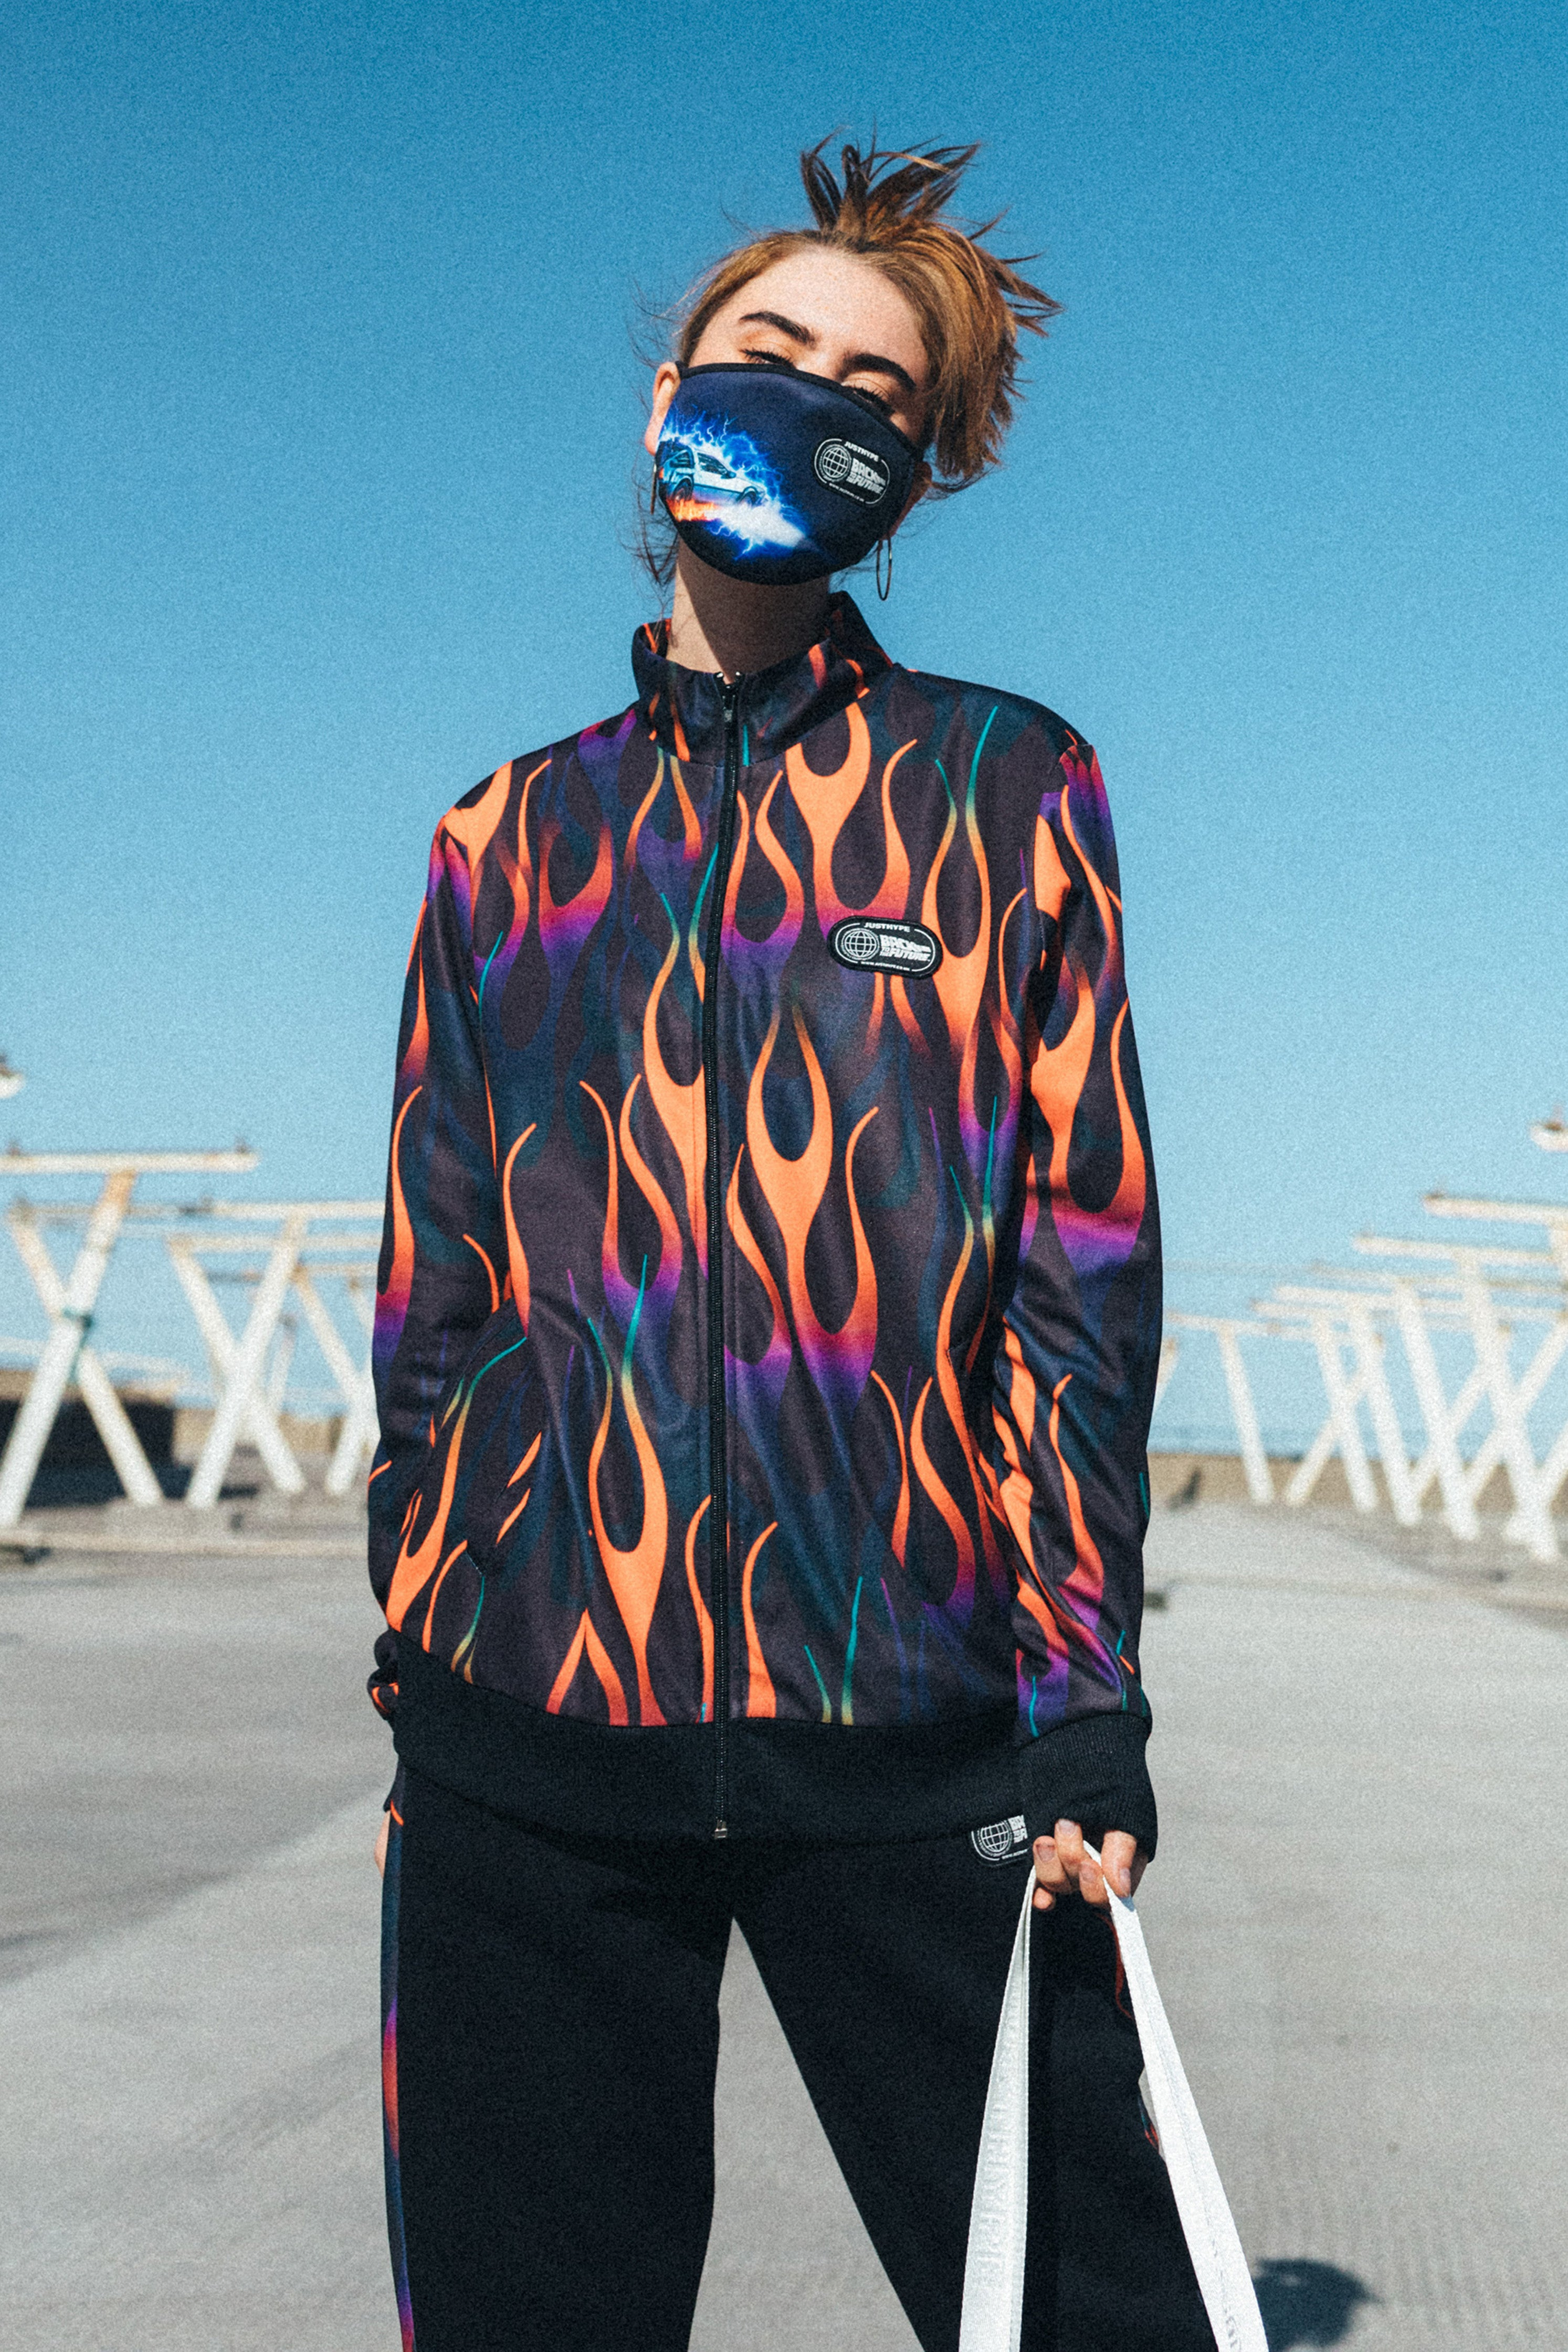 Hype X Back To The Future Black Flame High Neck Jacket | Size X-Small